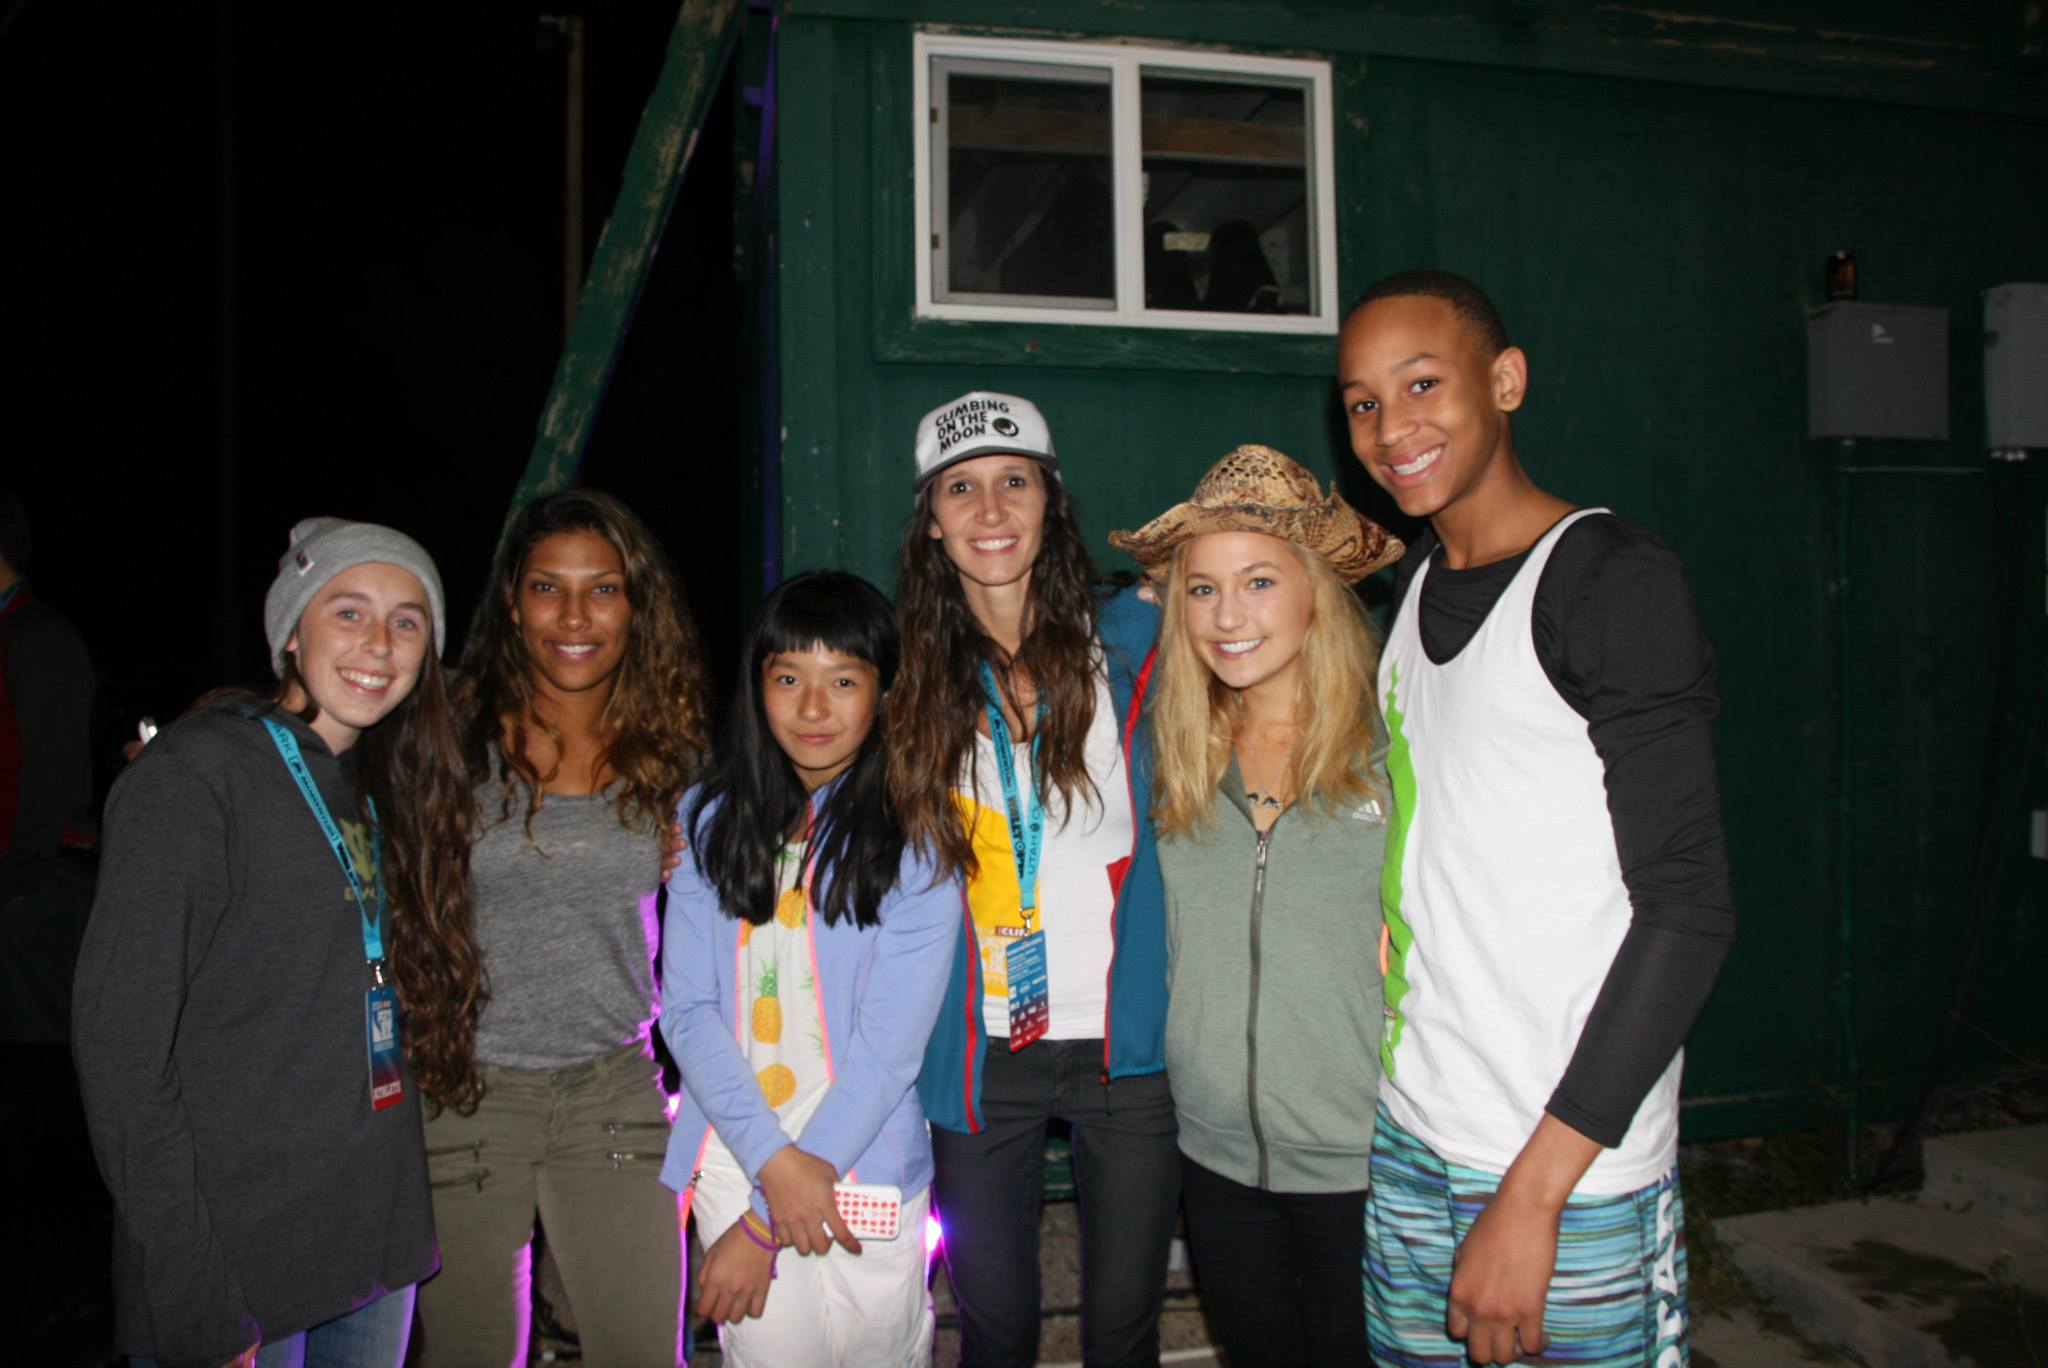 Left to Right:  sara griffin, Meagan Martin, Ashima Shiraishi, JC Hunter, and Sasha Digiulian  Photo snapshot from ORSM2014 (Outdoor Retailer Facebook page)